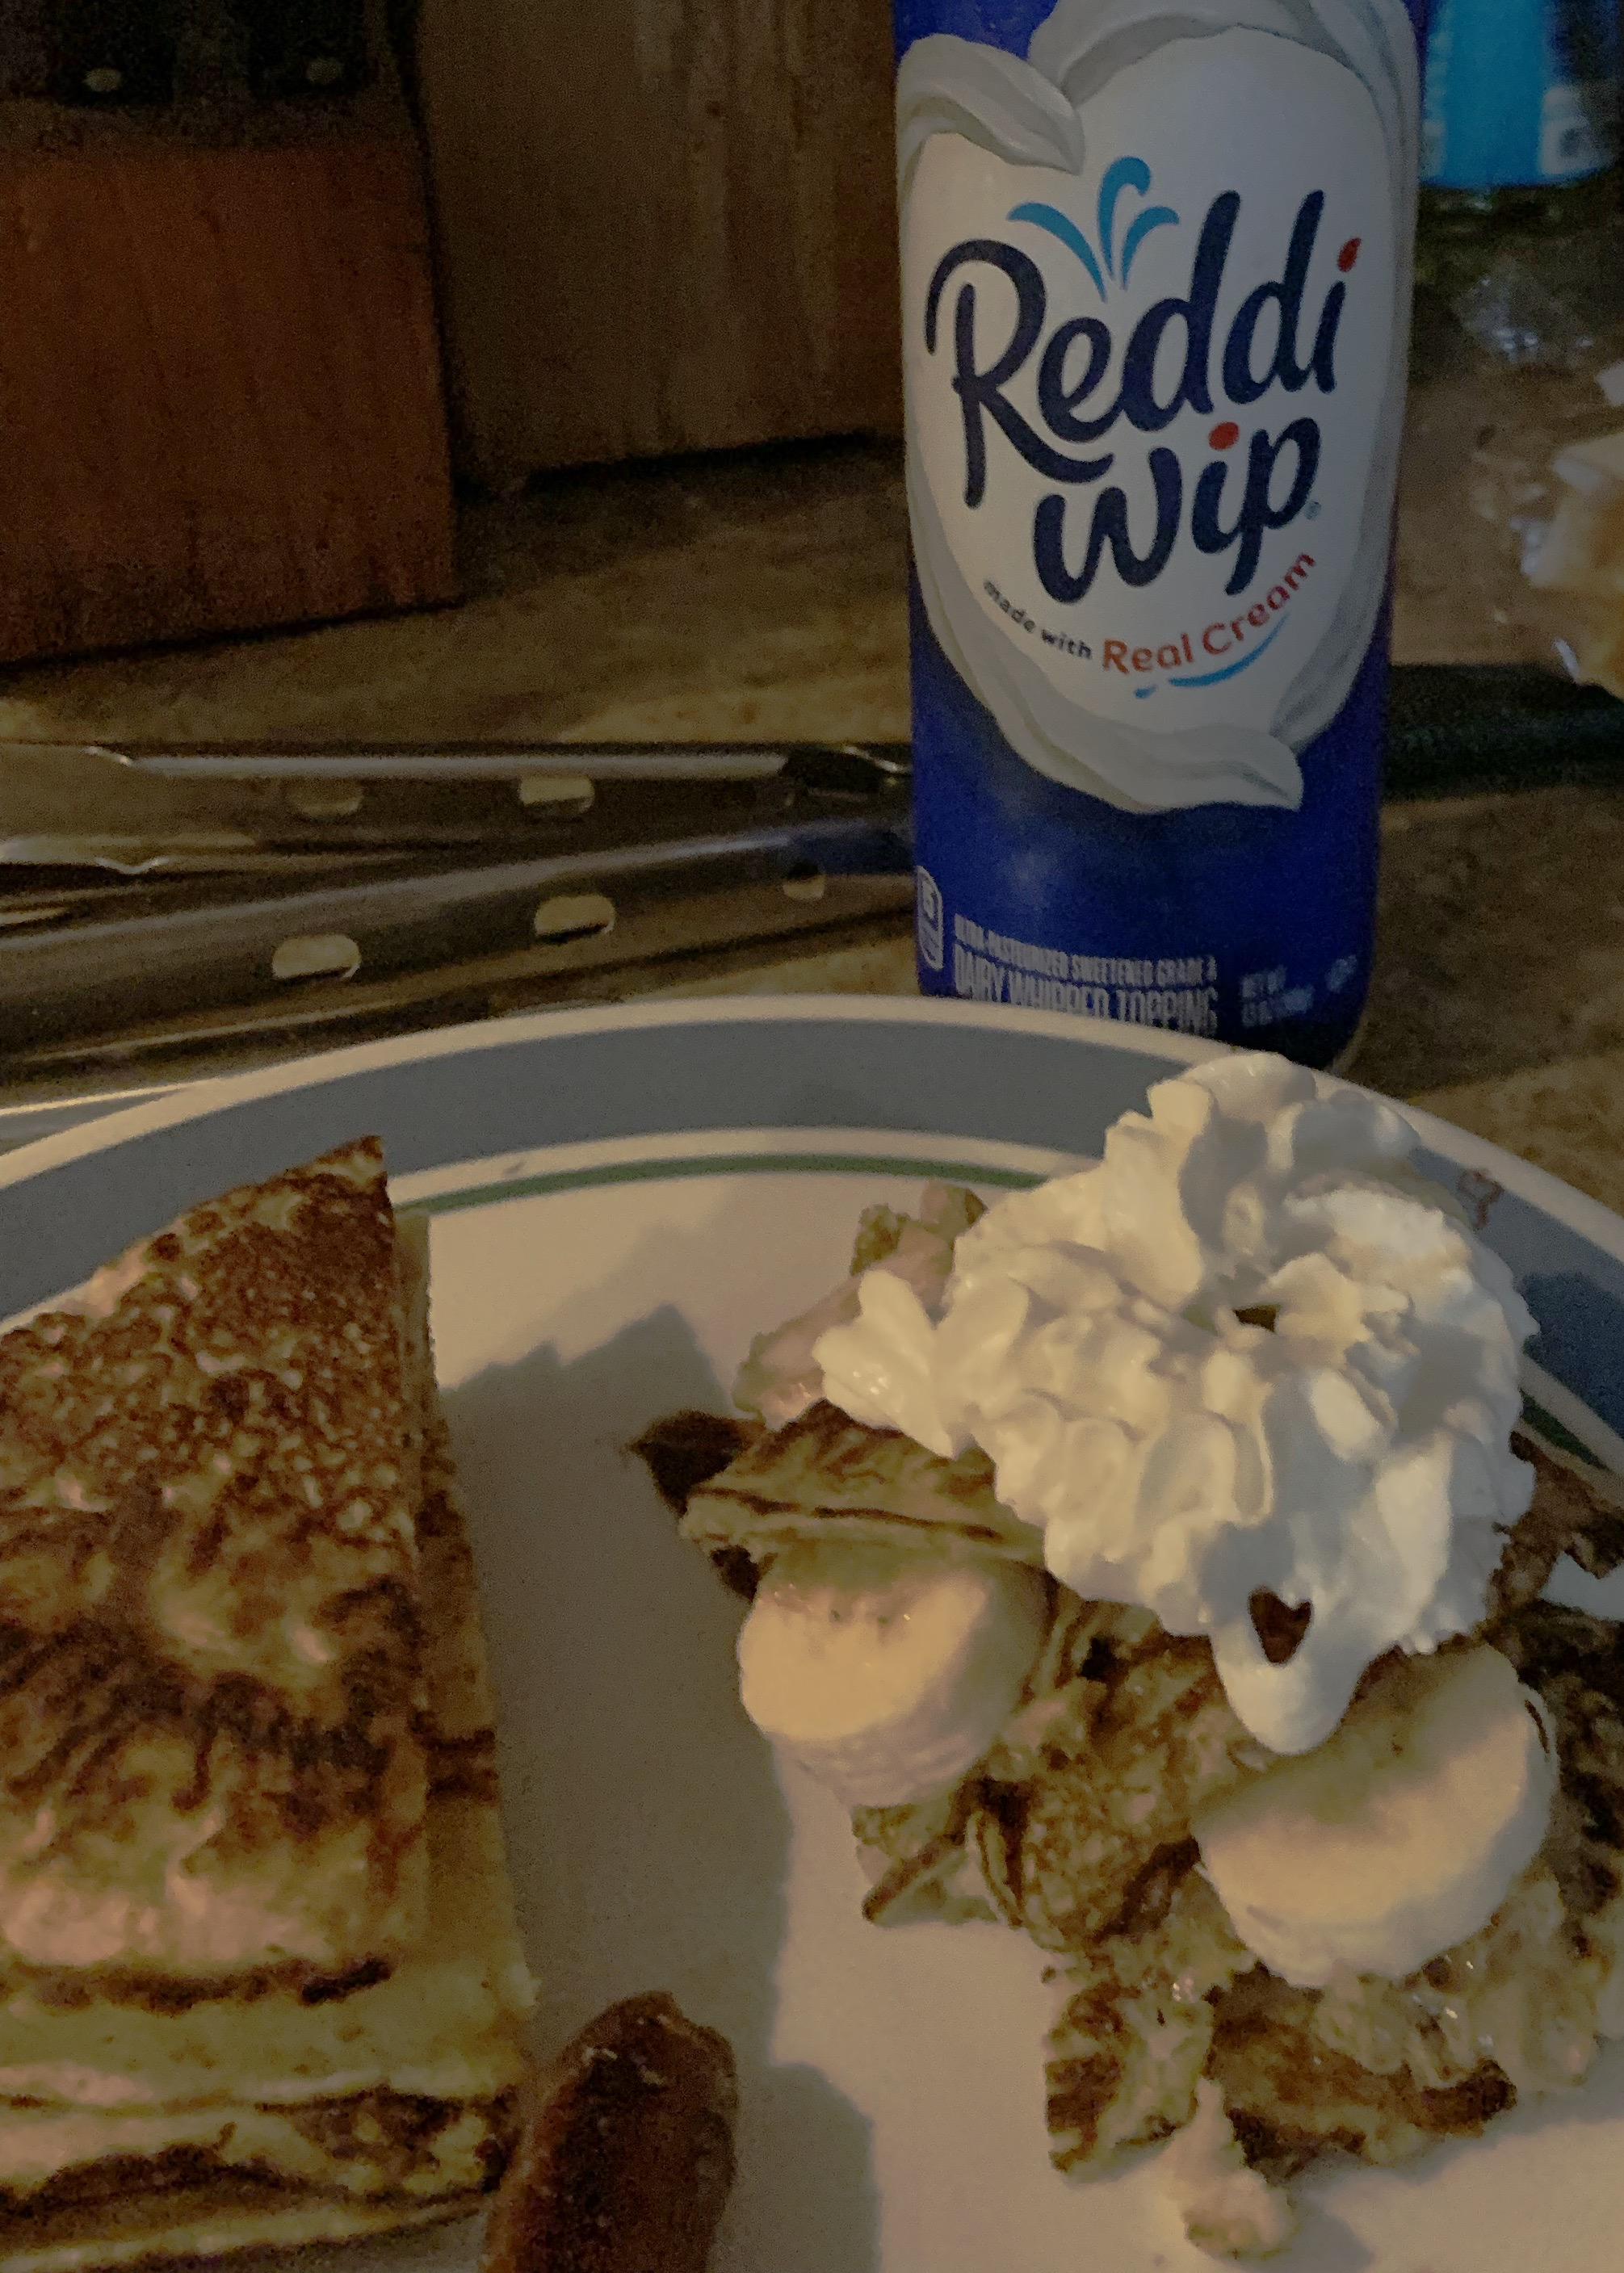 Gluten Free Peanut Butter and Banana Crepe Stack Audrey E Wrobel